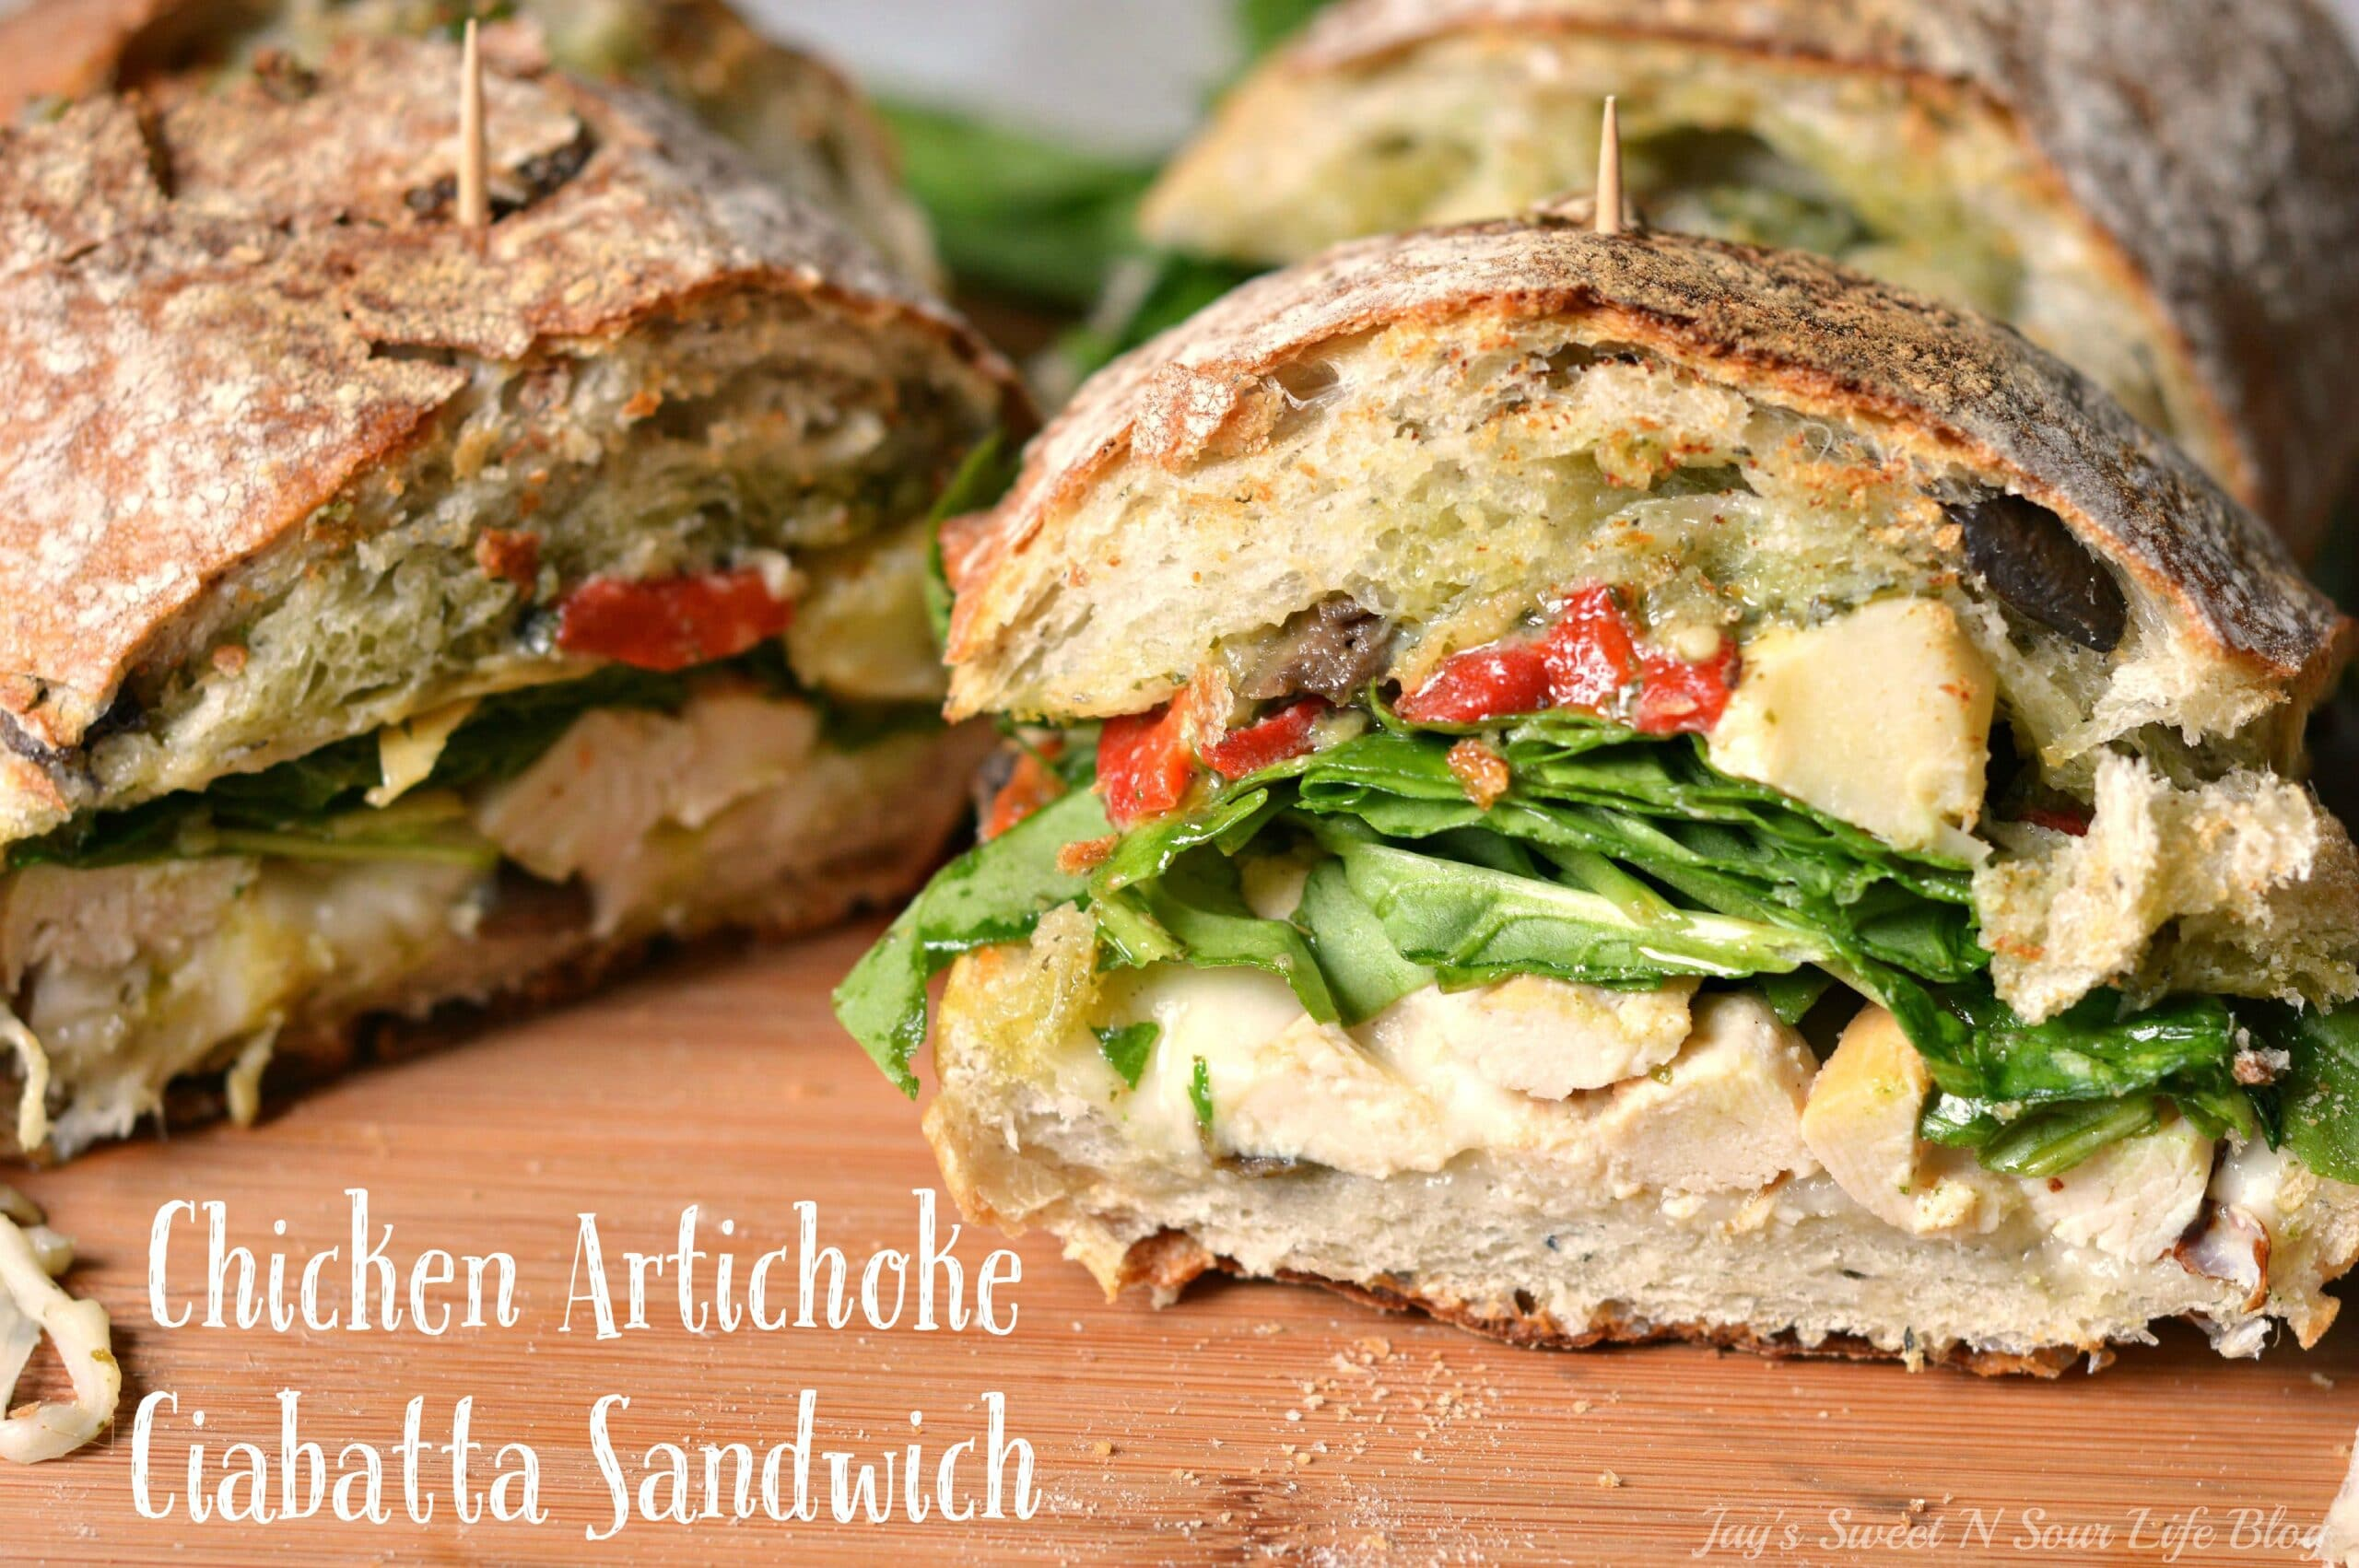 This Tuscan-inspired Chicken Artichoke Ciabatta Sandwich is loaded with roasted red peppers, artichokes, grilled chicken, fresh spinach, deli-sliced provolone cheese, and Pesto sauce. The perfect balance of sweet and savory, it's the perfect way to mix up your normal lunchtime routine.